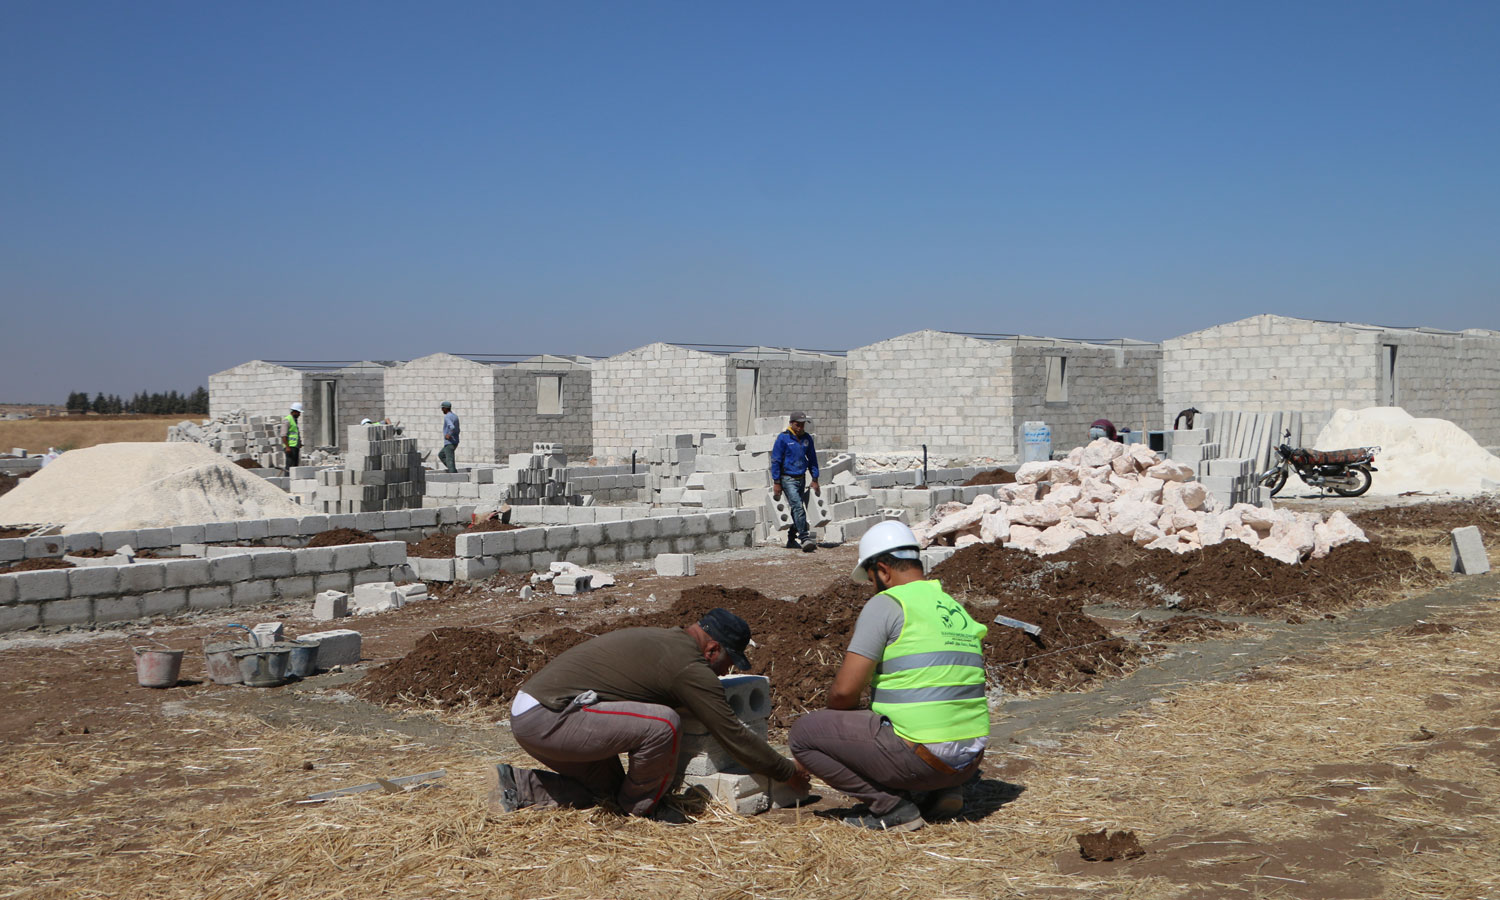 The construction work of housing units to replace the makeshift tents by humanitarian organizations and bodies in northern Syria - 25 June 2020 (the local council Facebook account)